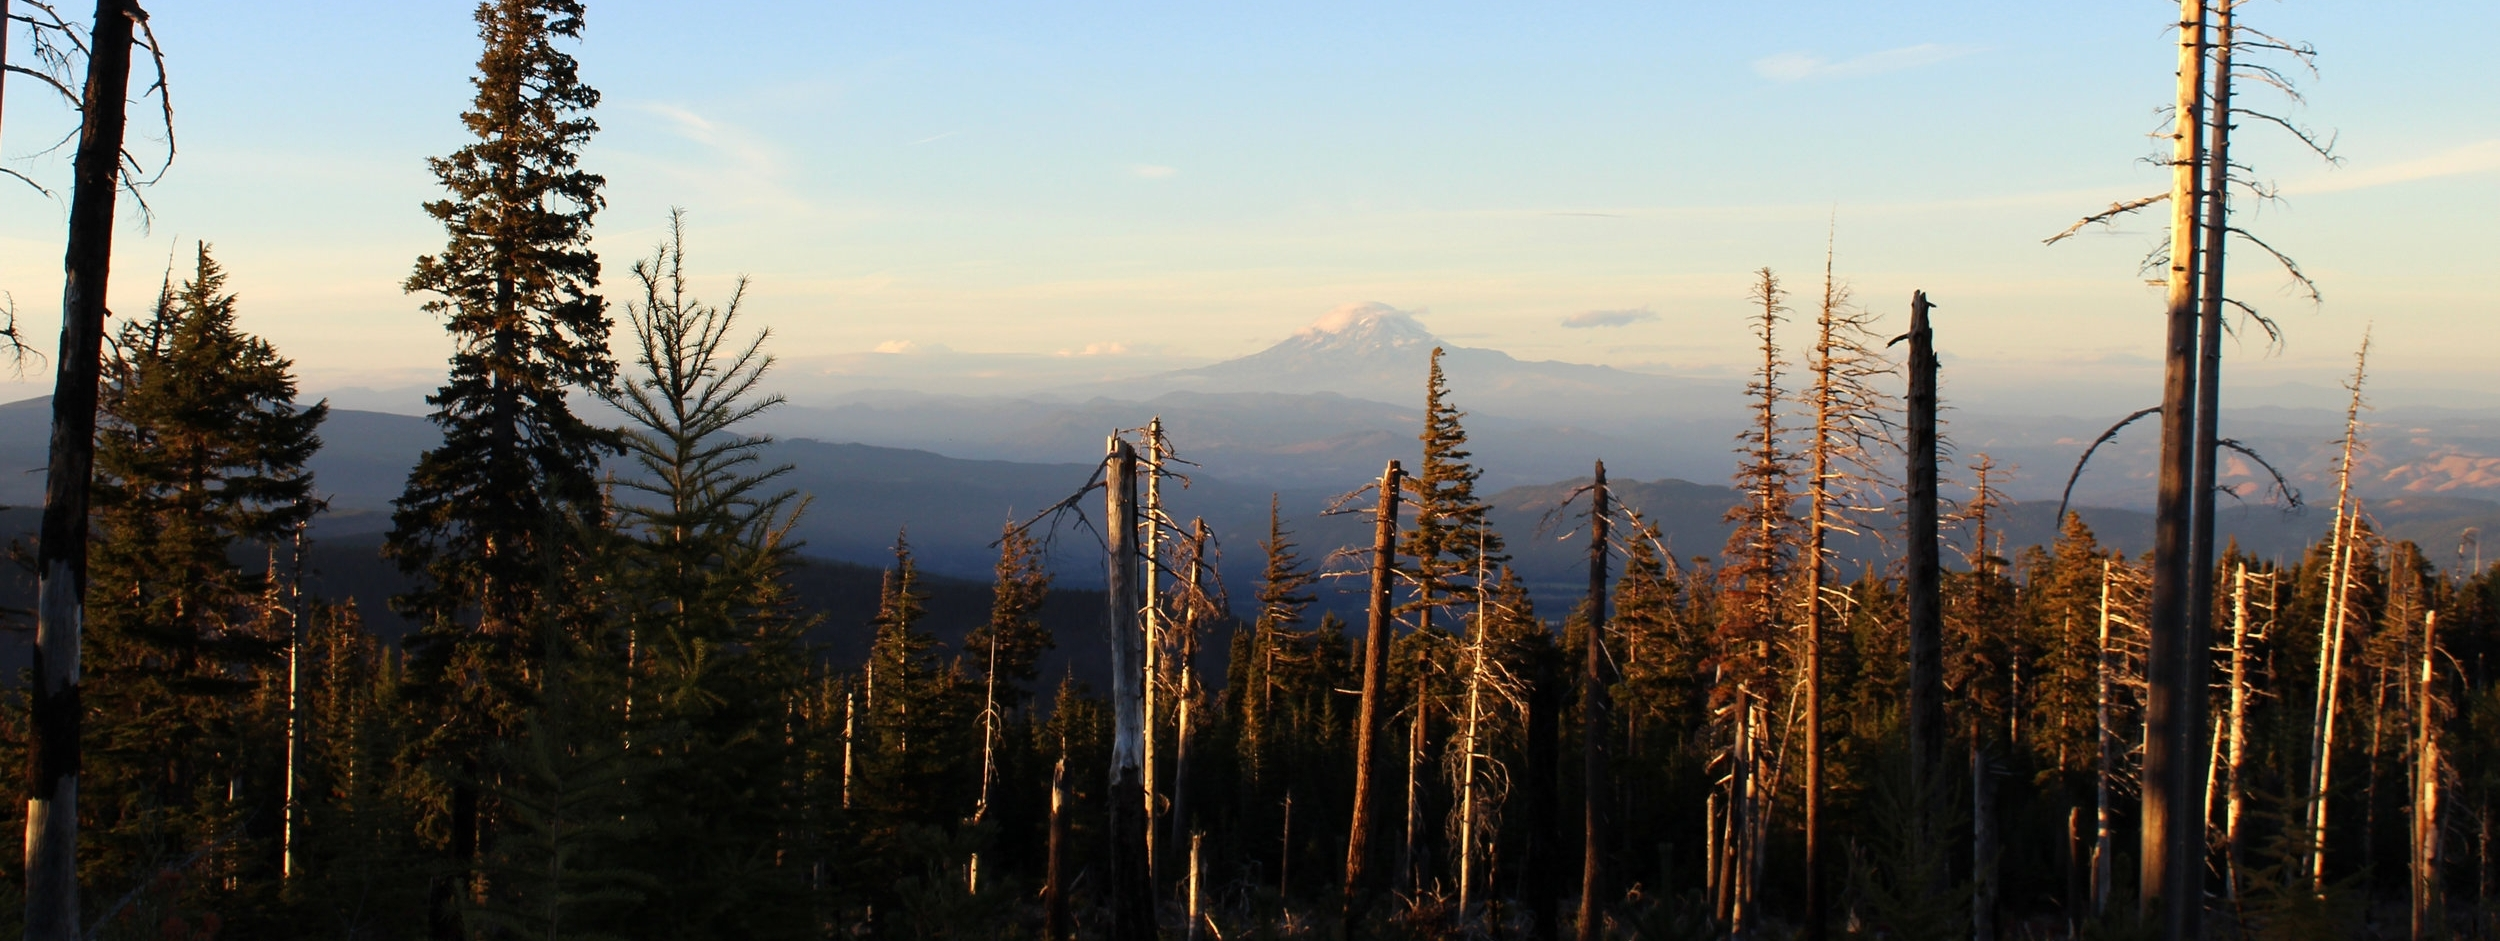 Mount Hood sunset.jpg